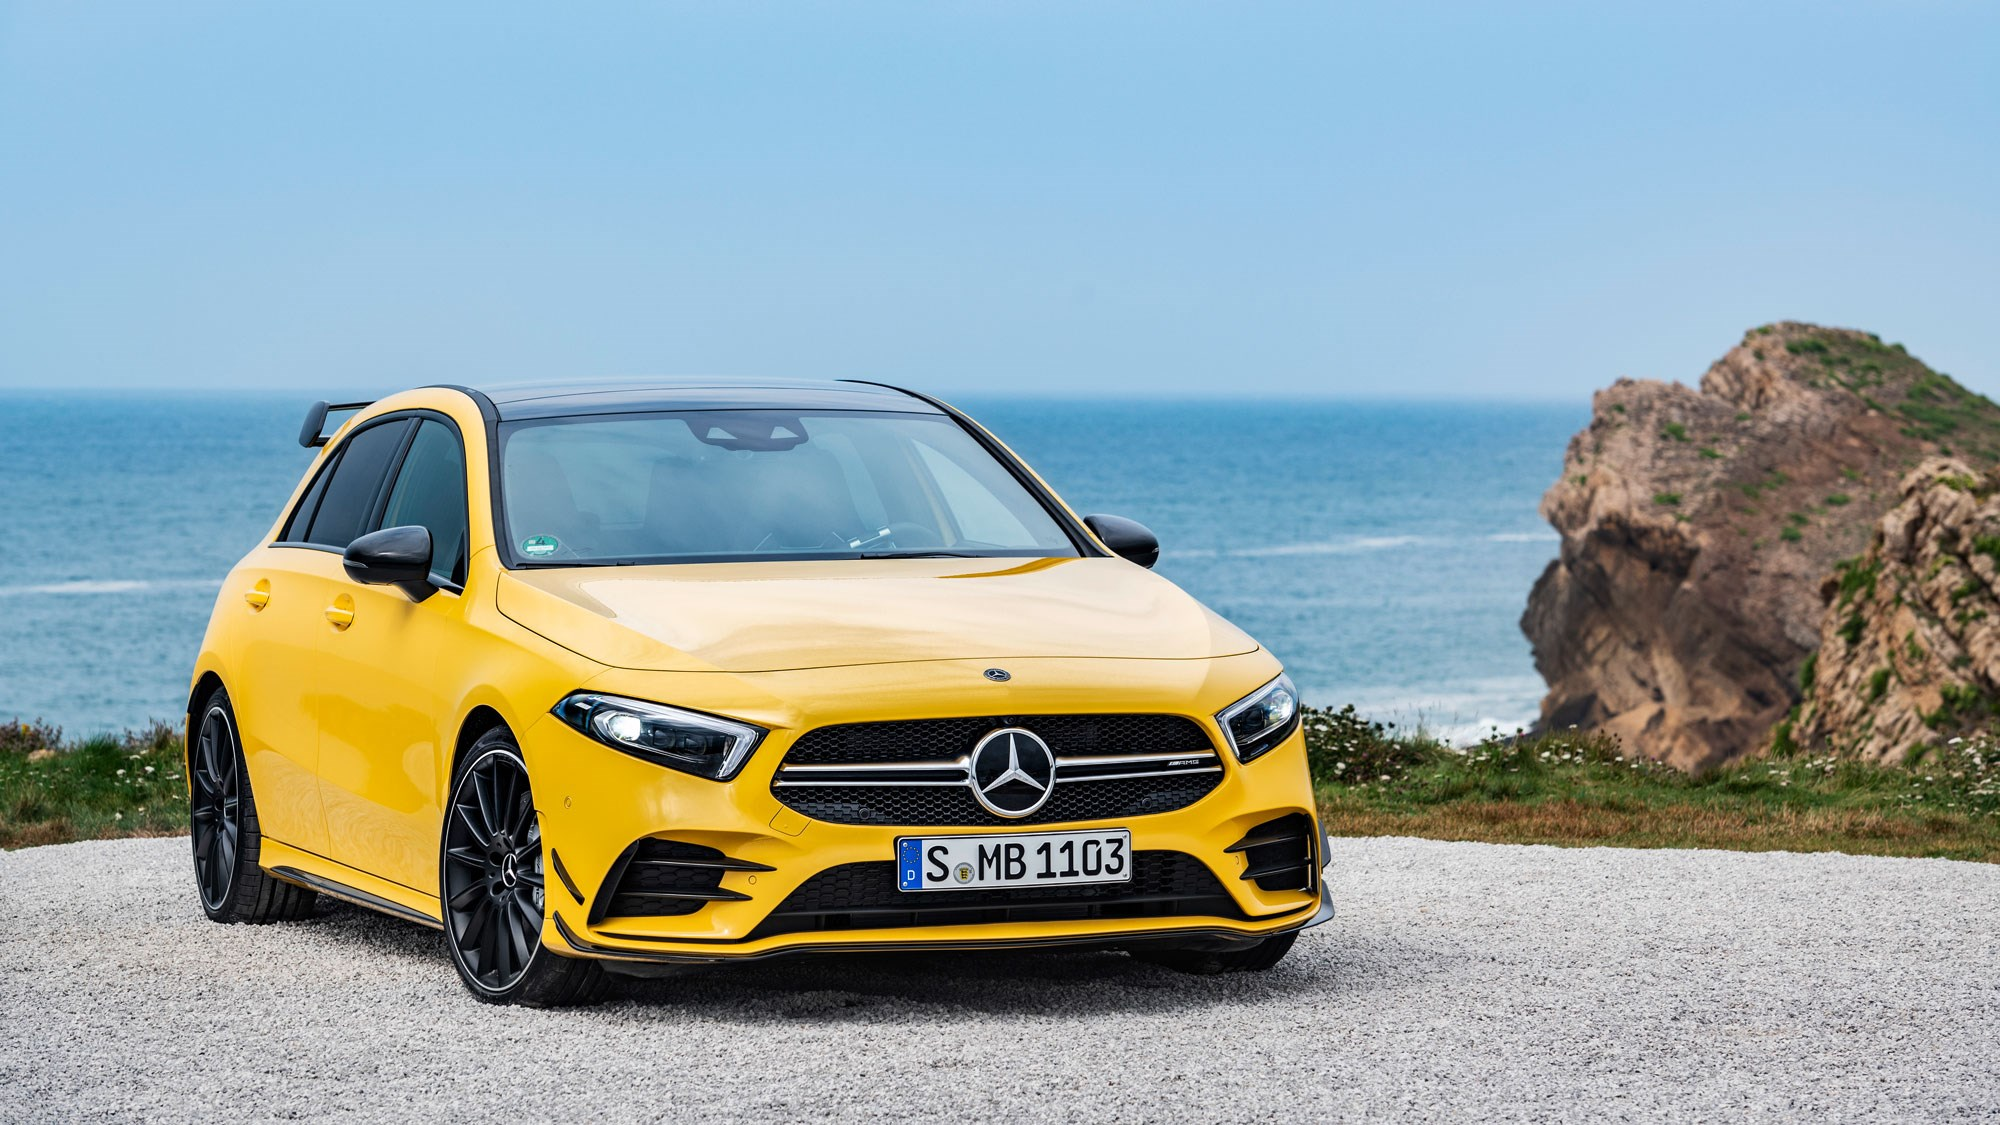 Mercedes-AMG A35: price, specs and what you need to know